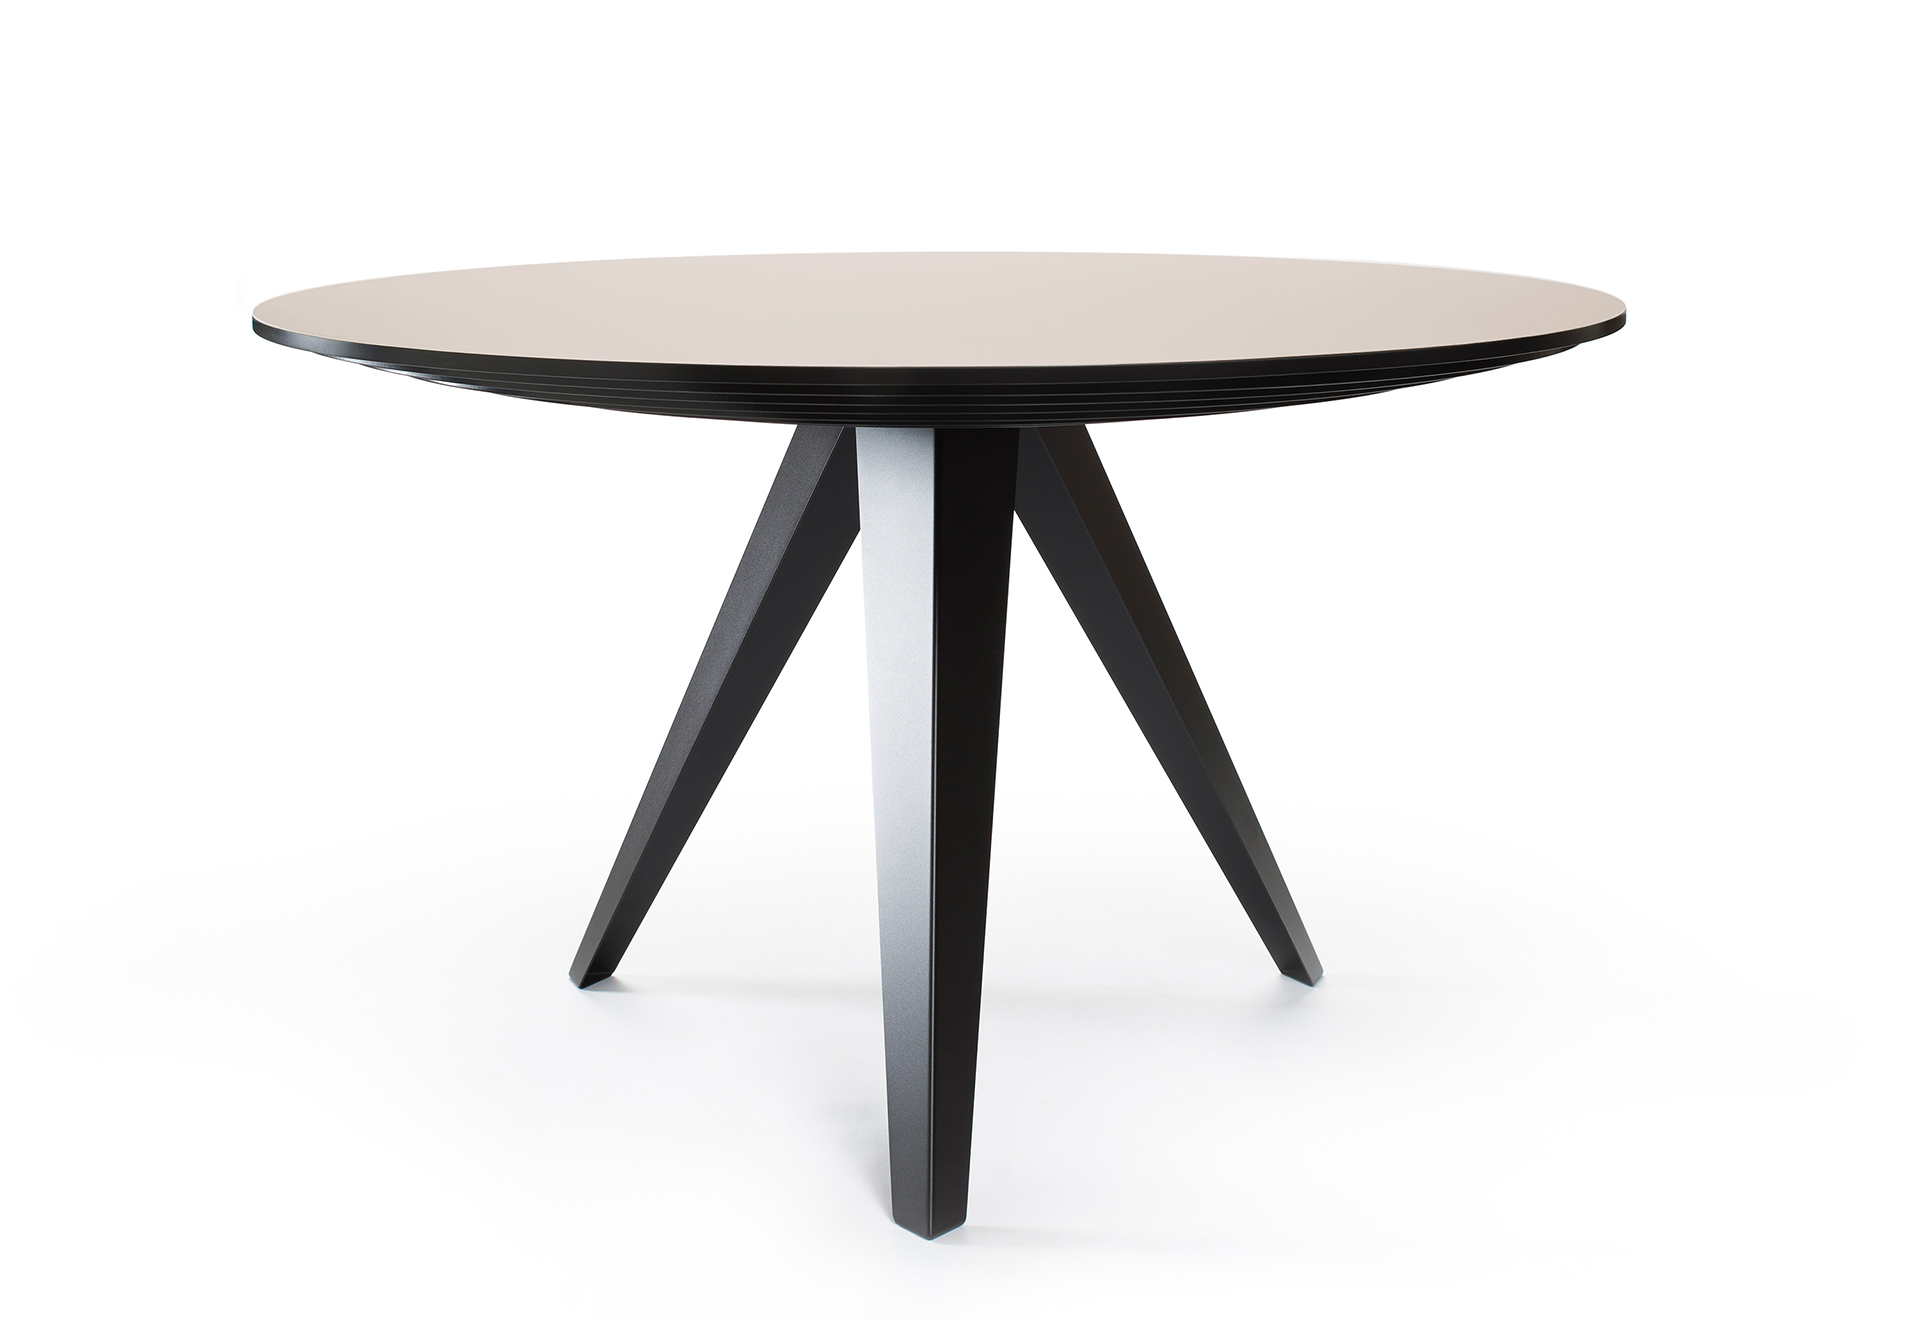 Tafel Rond Design.Ronde Eettafel Belly L Kees Marcelis L Odesi Your Dutch Design